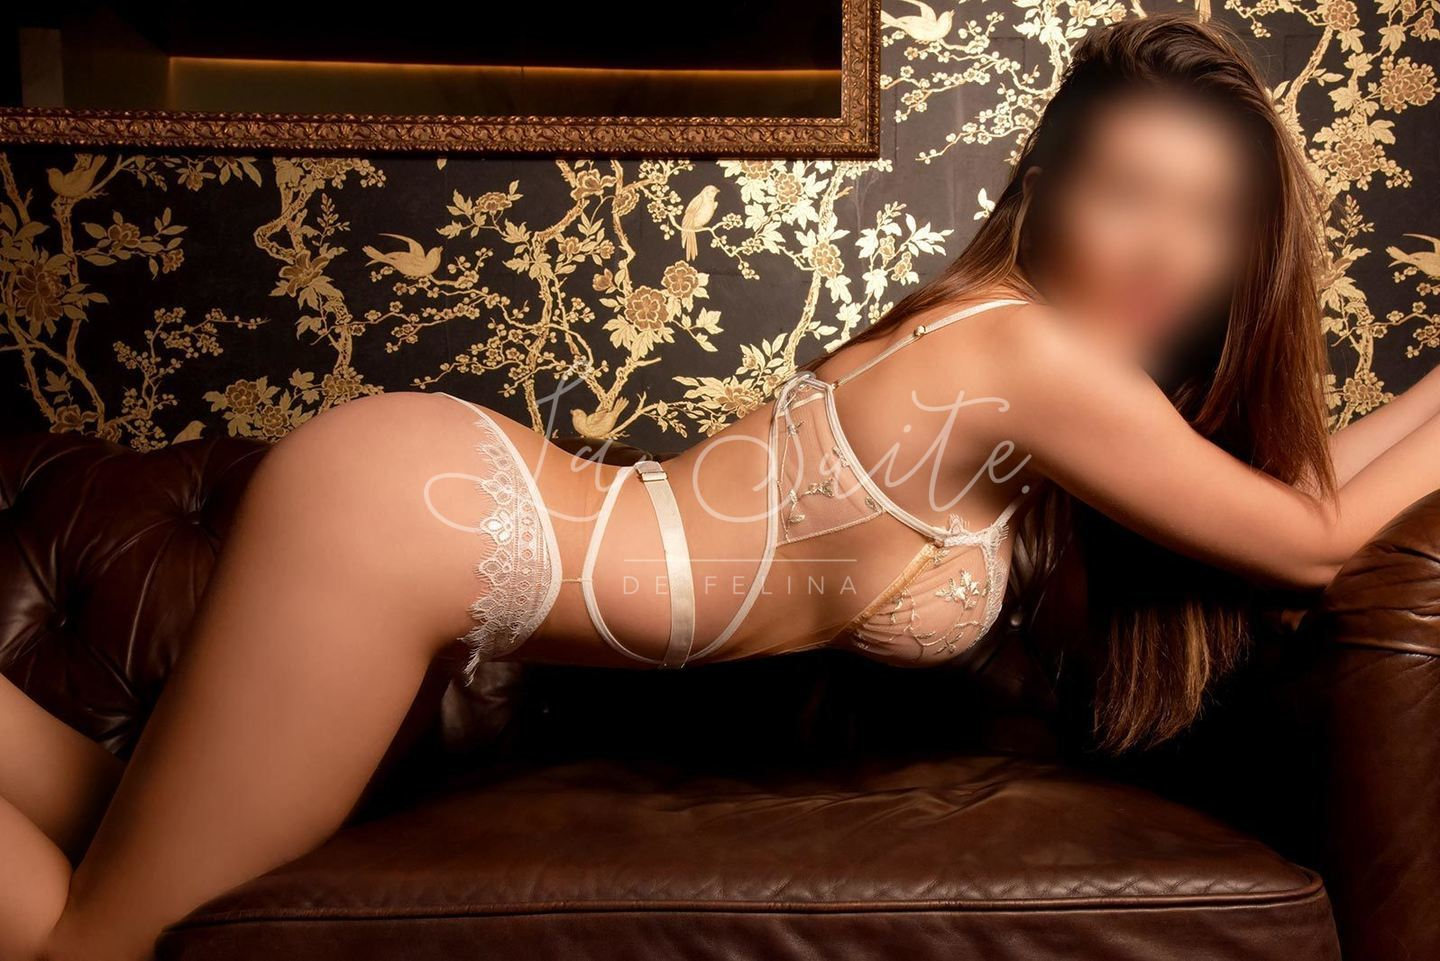 Vicky, British high end escort for GFE in Barcelona, wearing white lingerie